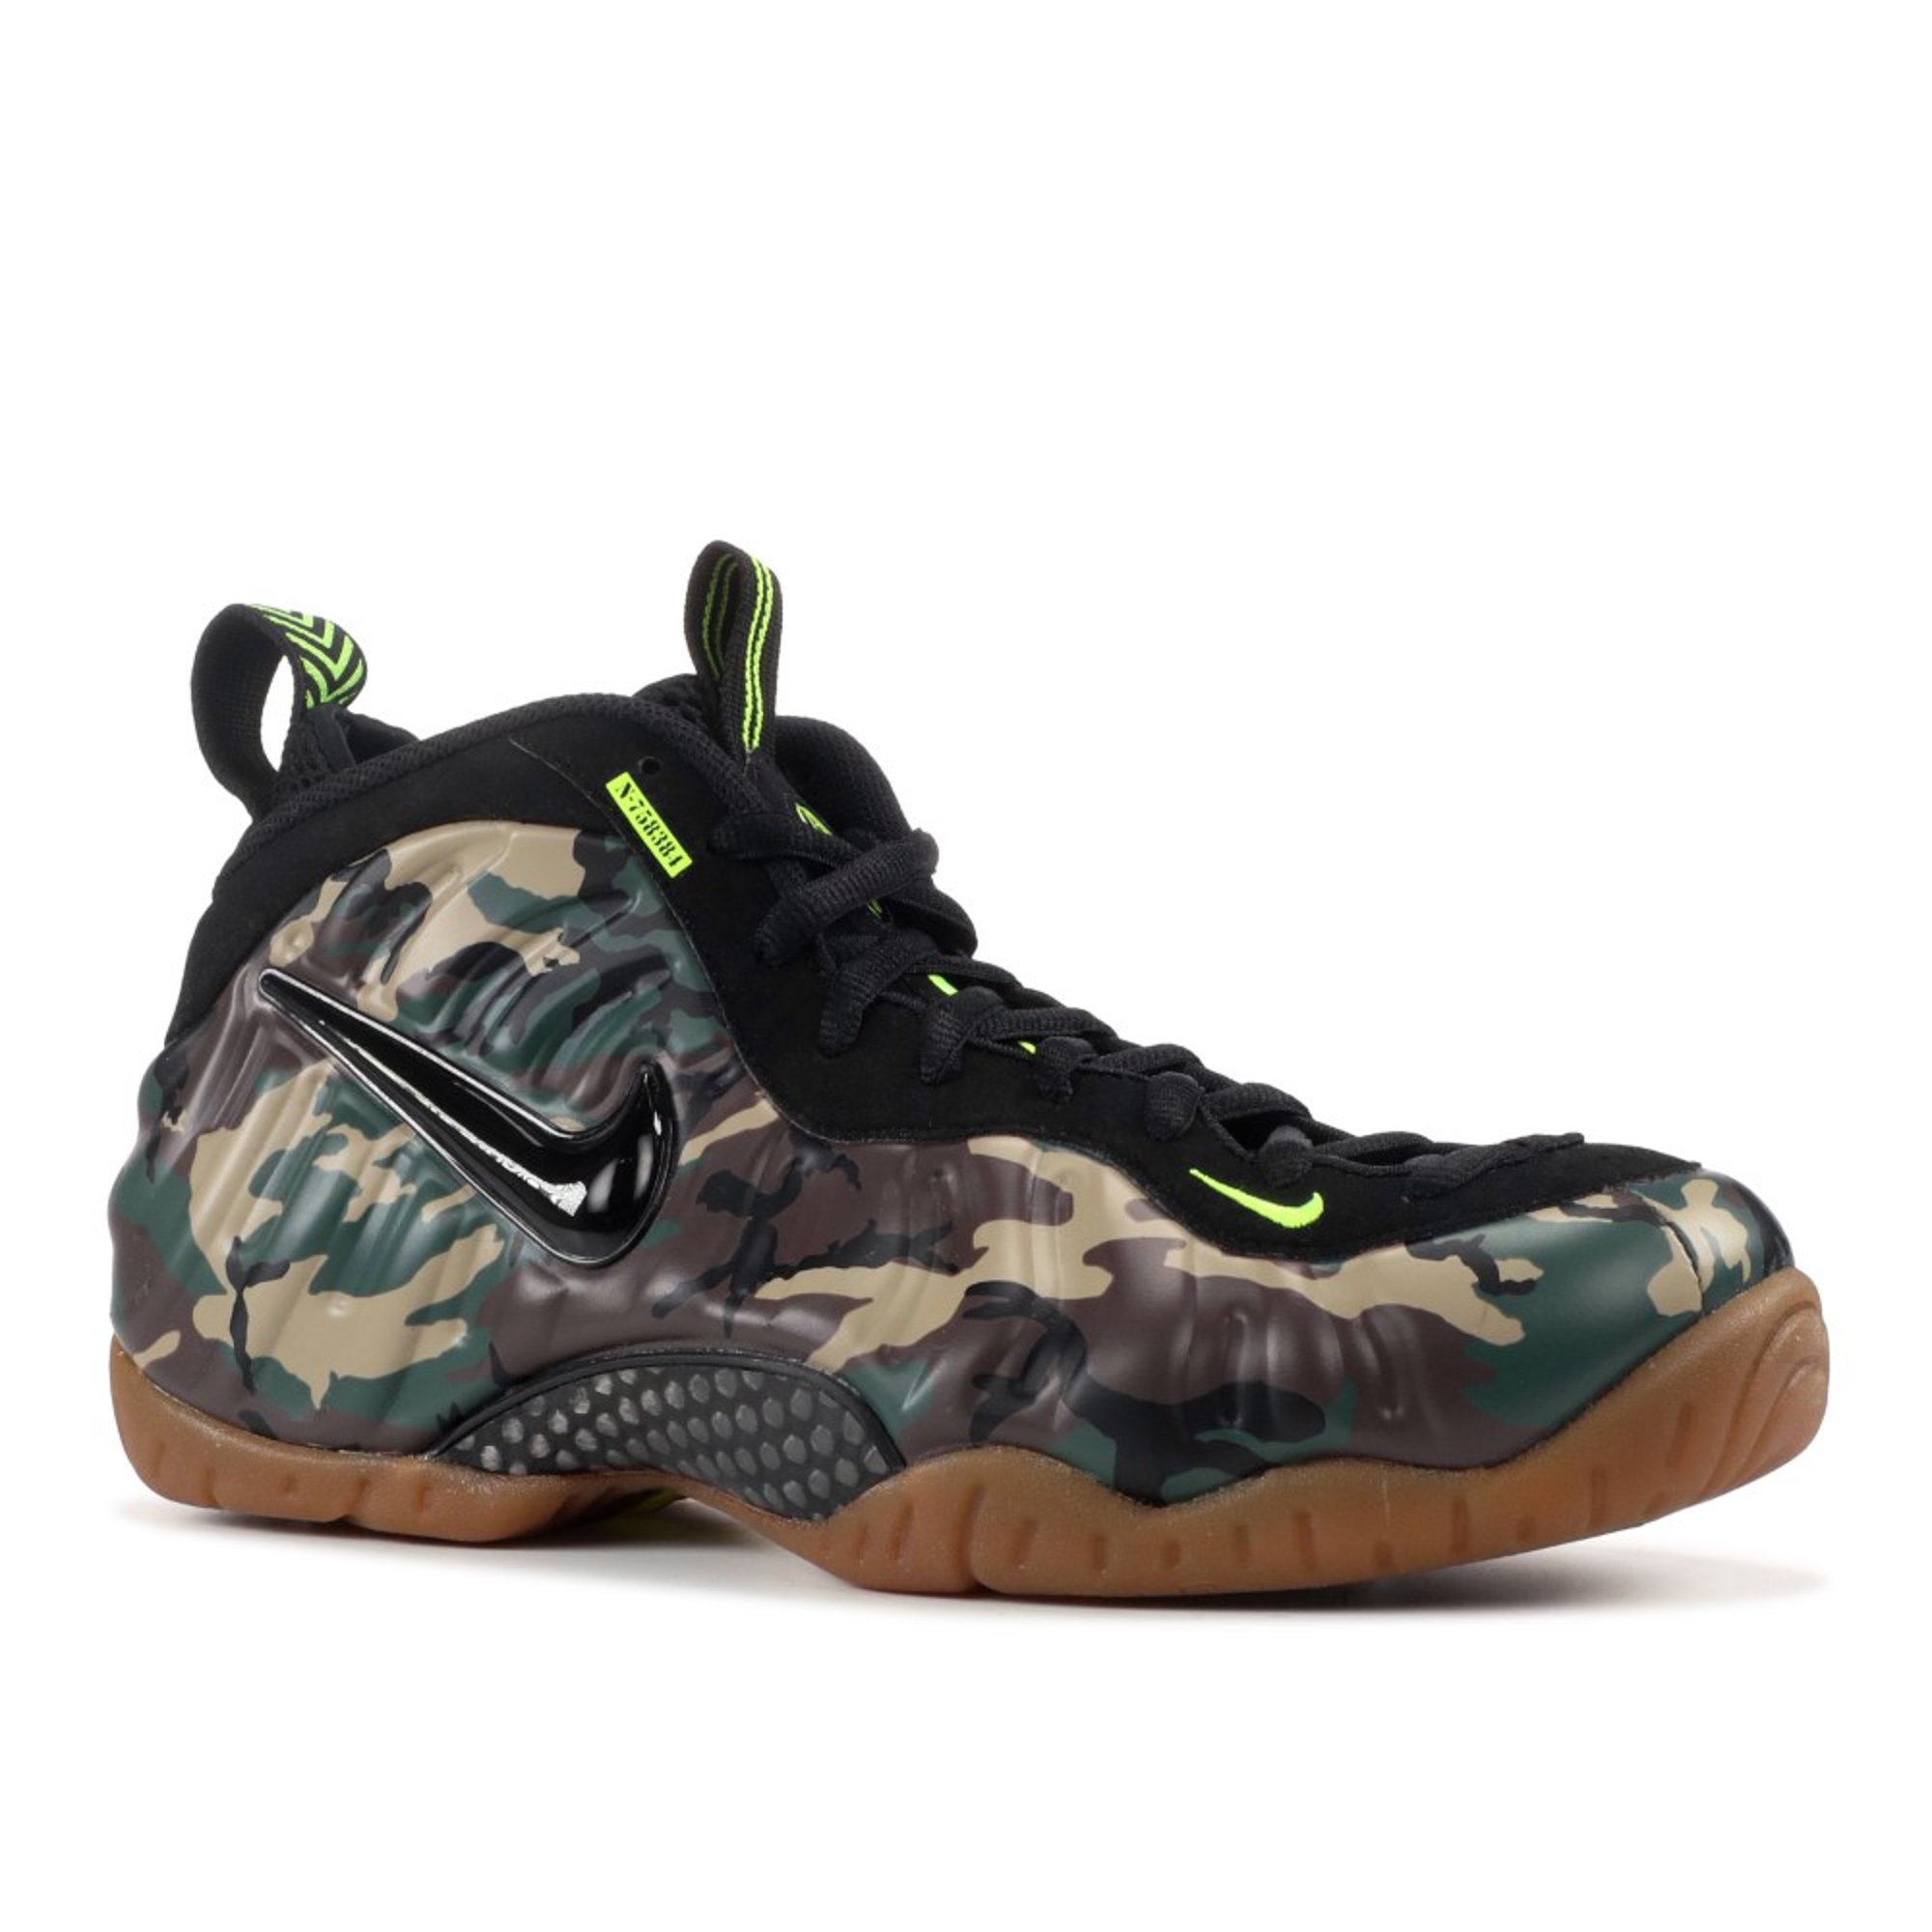 51bb2f55c21c2 Nike - Men - Air Foamposite Pro Prm Le  Green Camo  - 587547-300 - Size 10